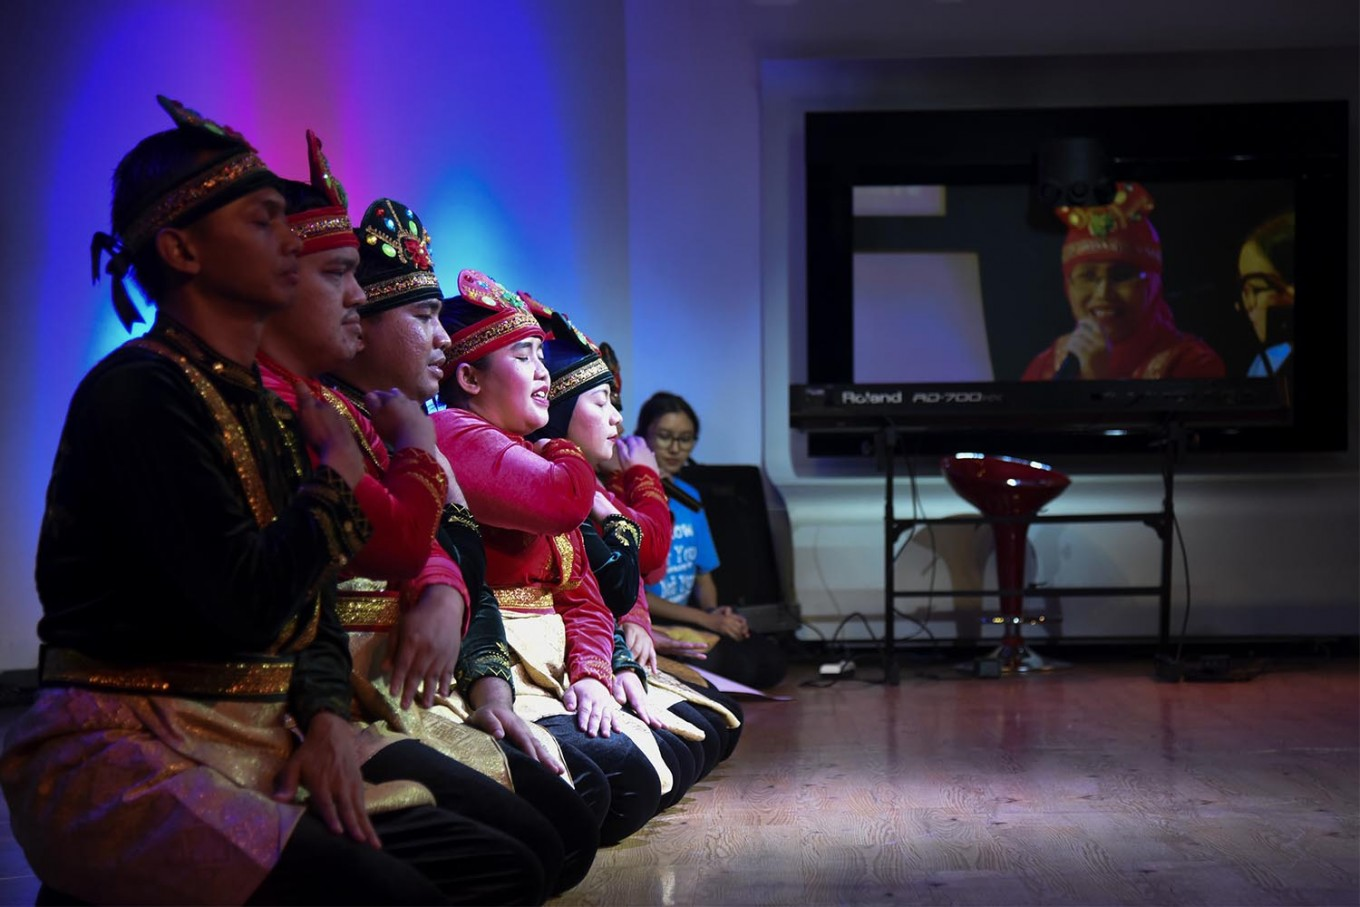 Pelita Monas Foundation members – who are mostly visually impaired – perform an Acehnese Saman dance. JP/Rosa Panggabean